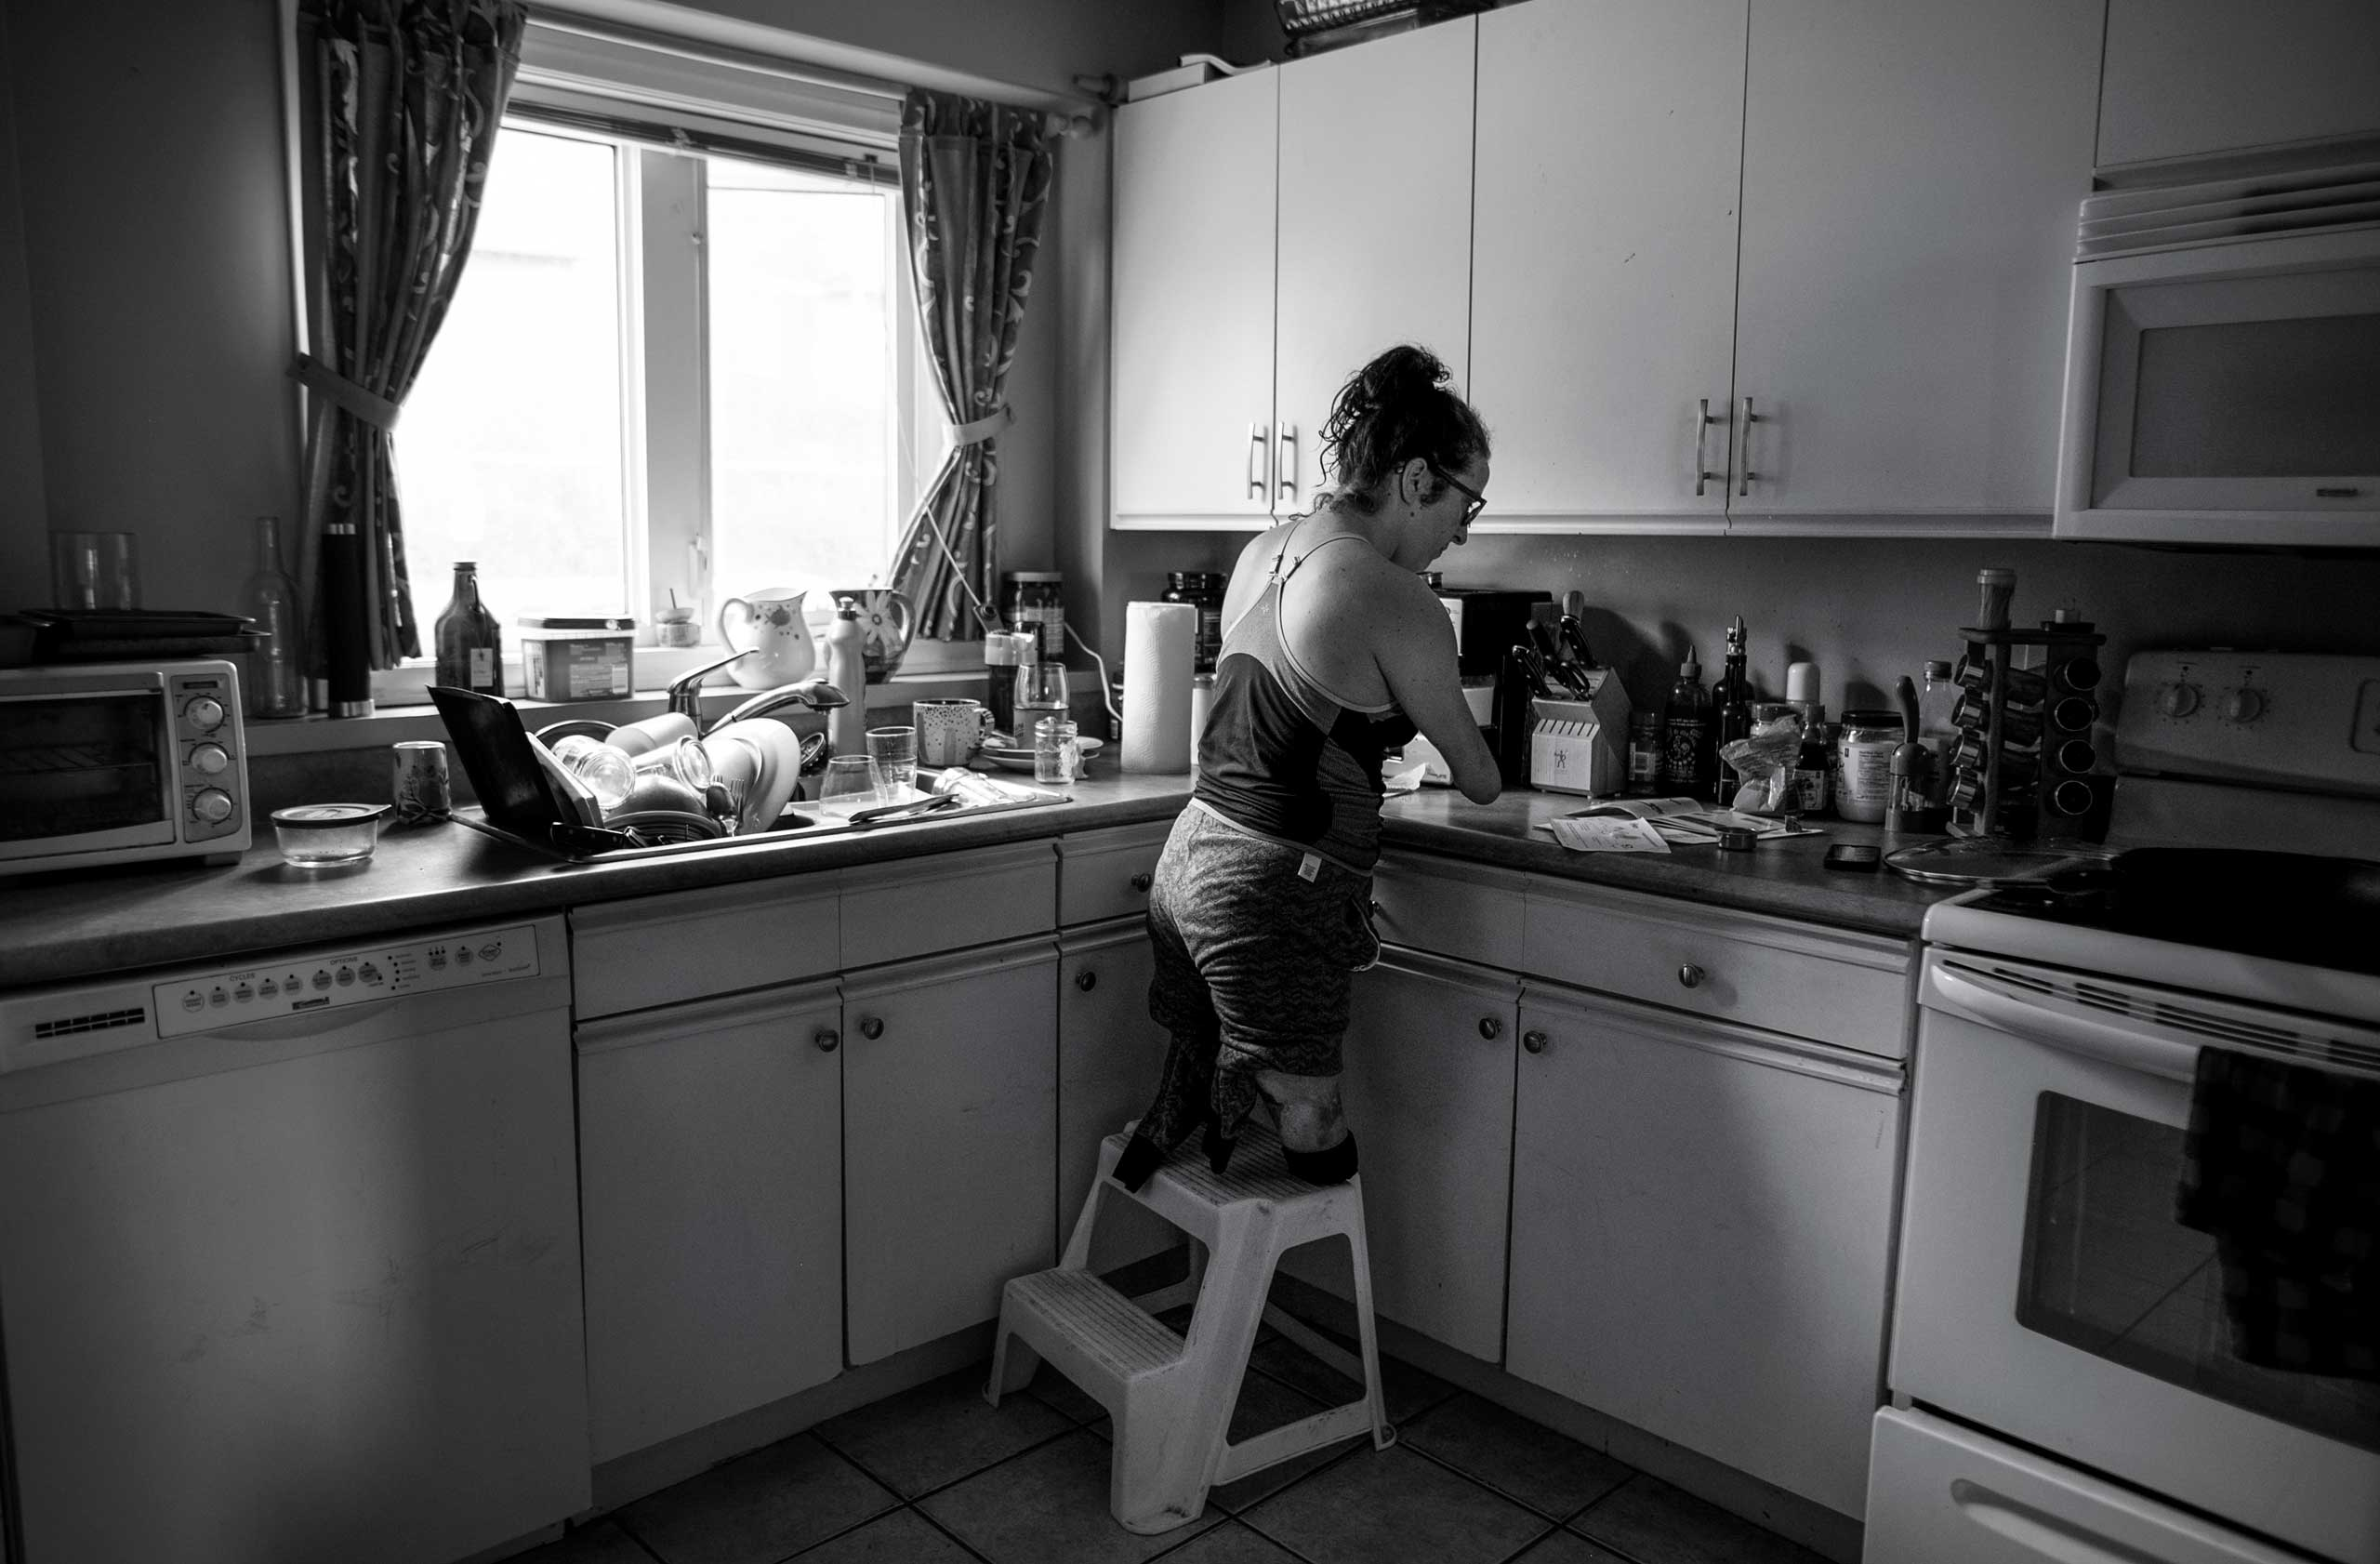 Lindsay stands on a step stool while making coffee early in the morning in her home in Halifax, Nova Scotia, Canada on Sept. 18, 2016.